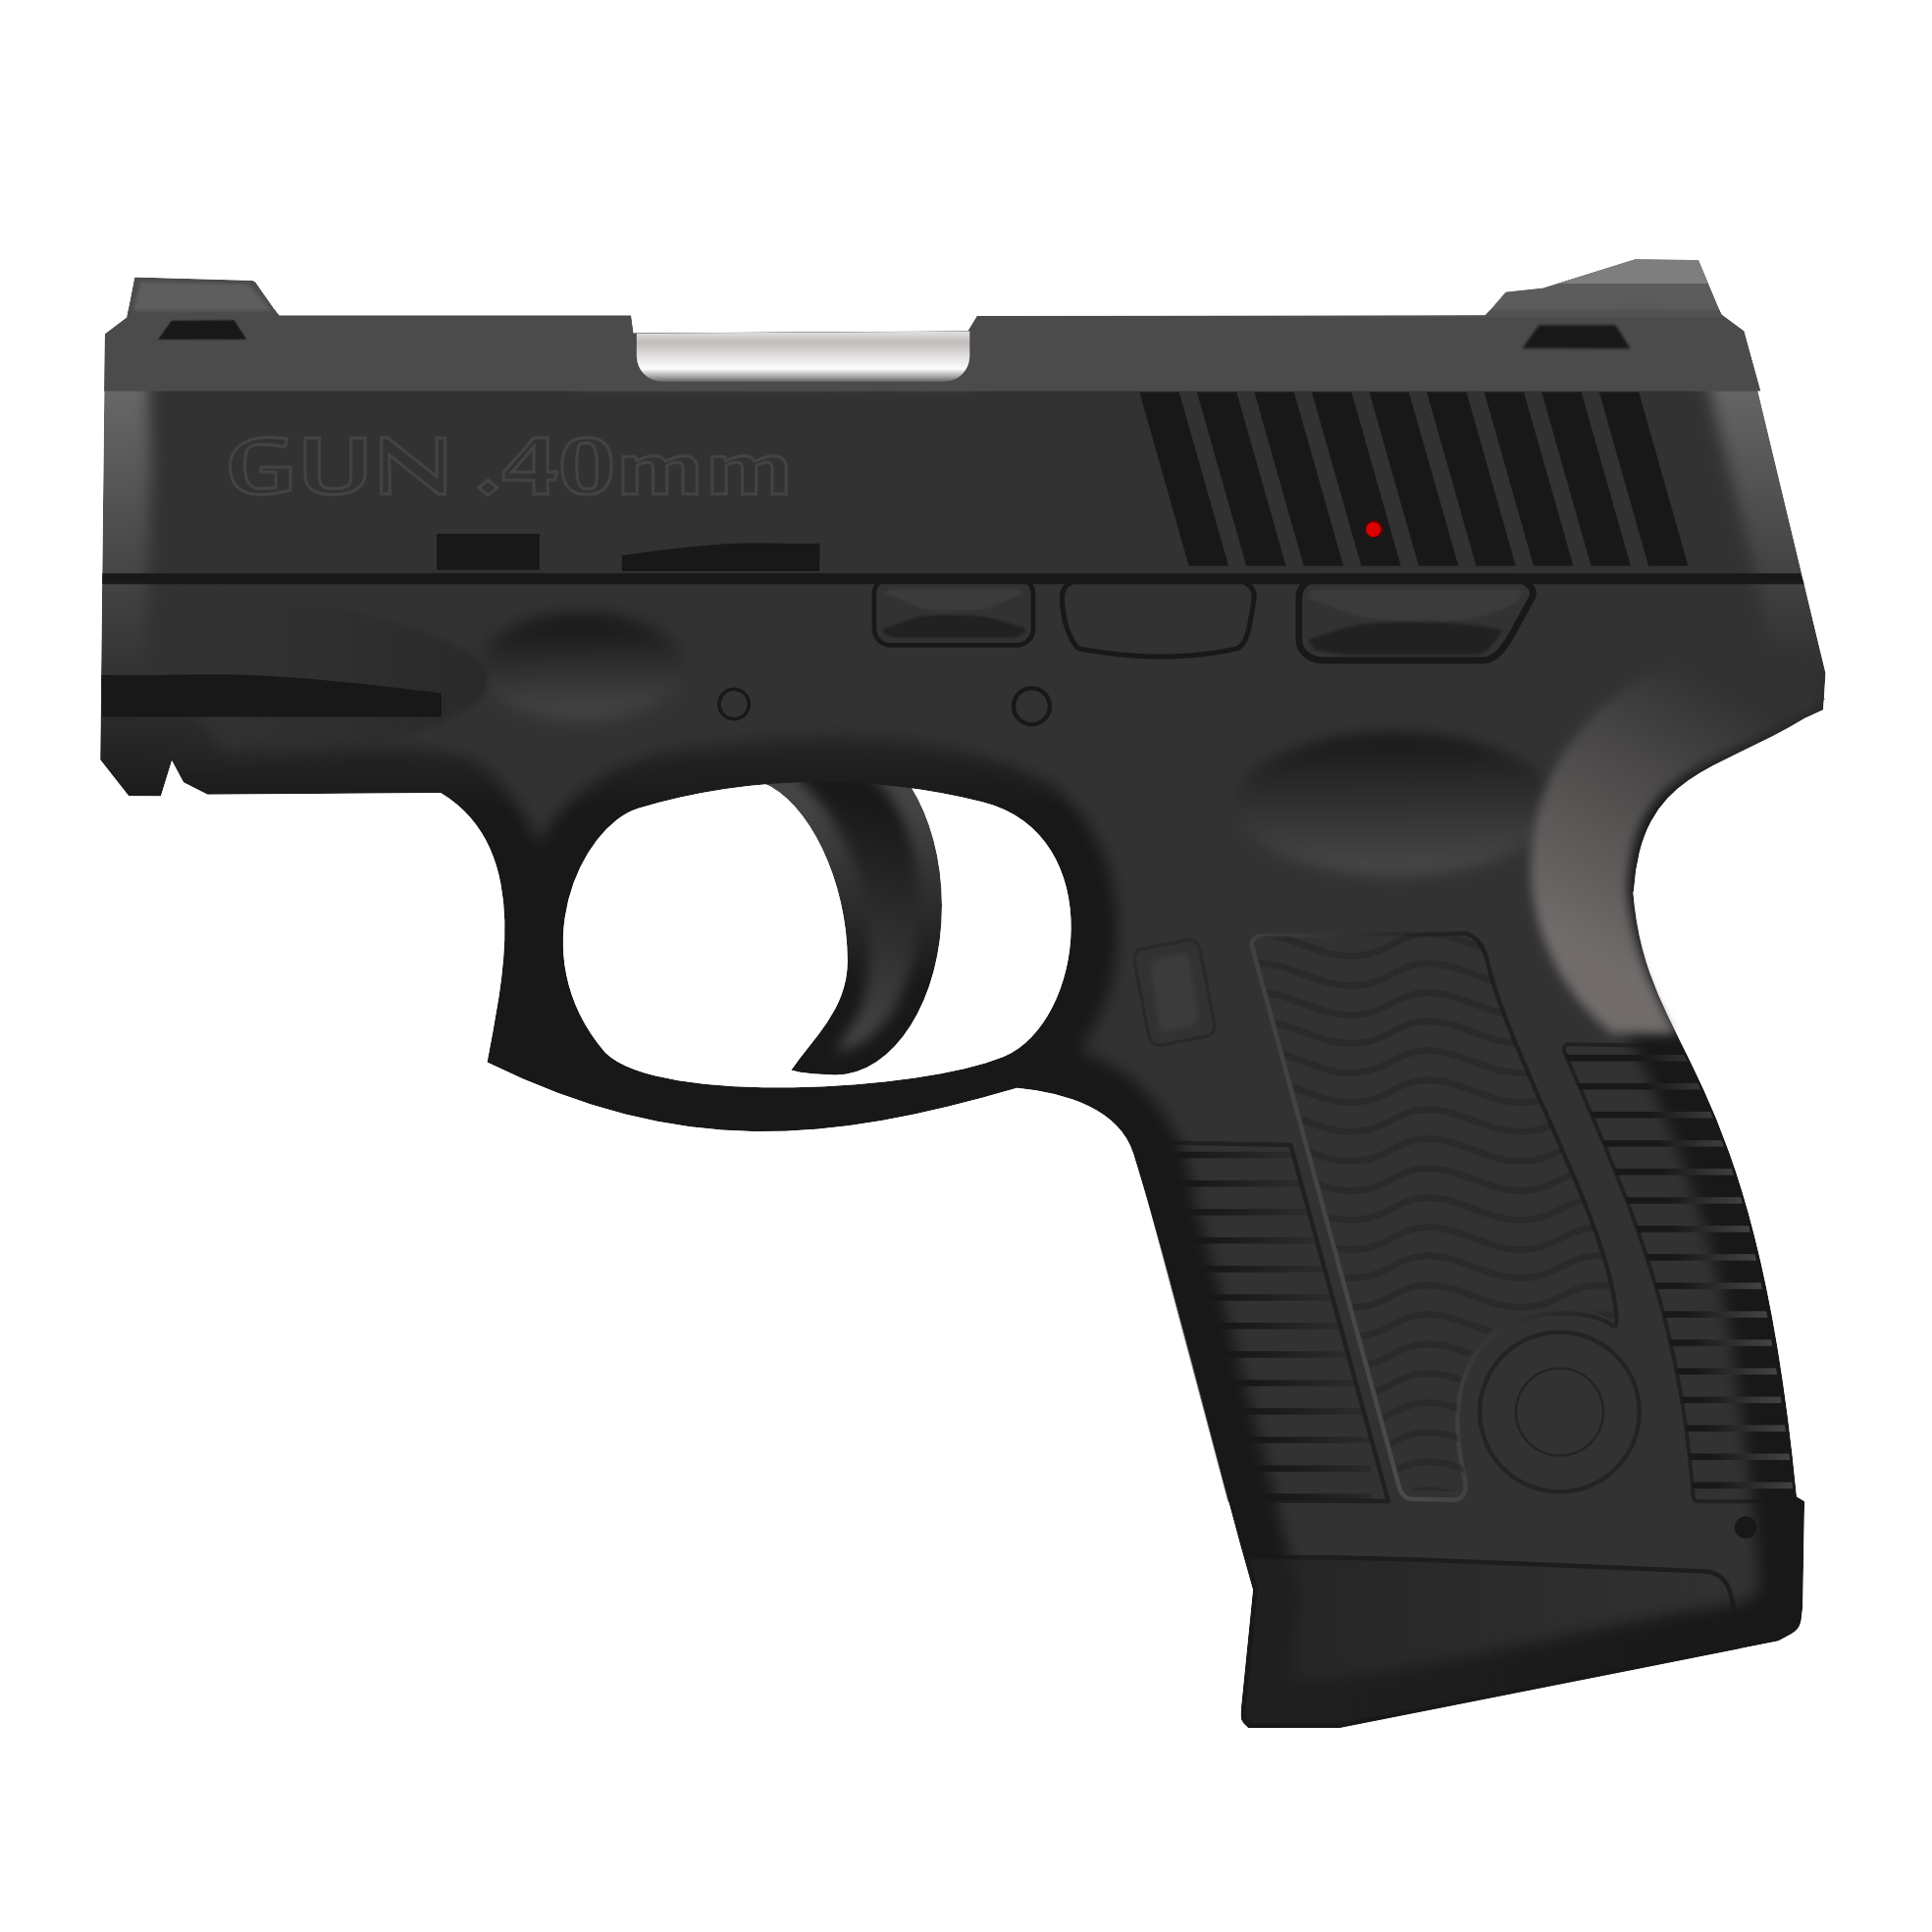 Download - Gun PNG Transparent Background